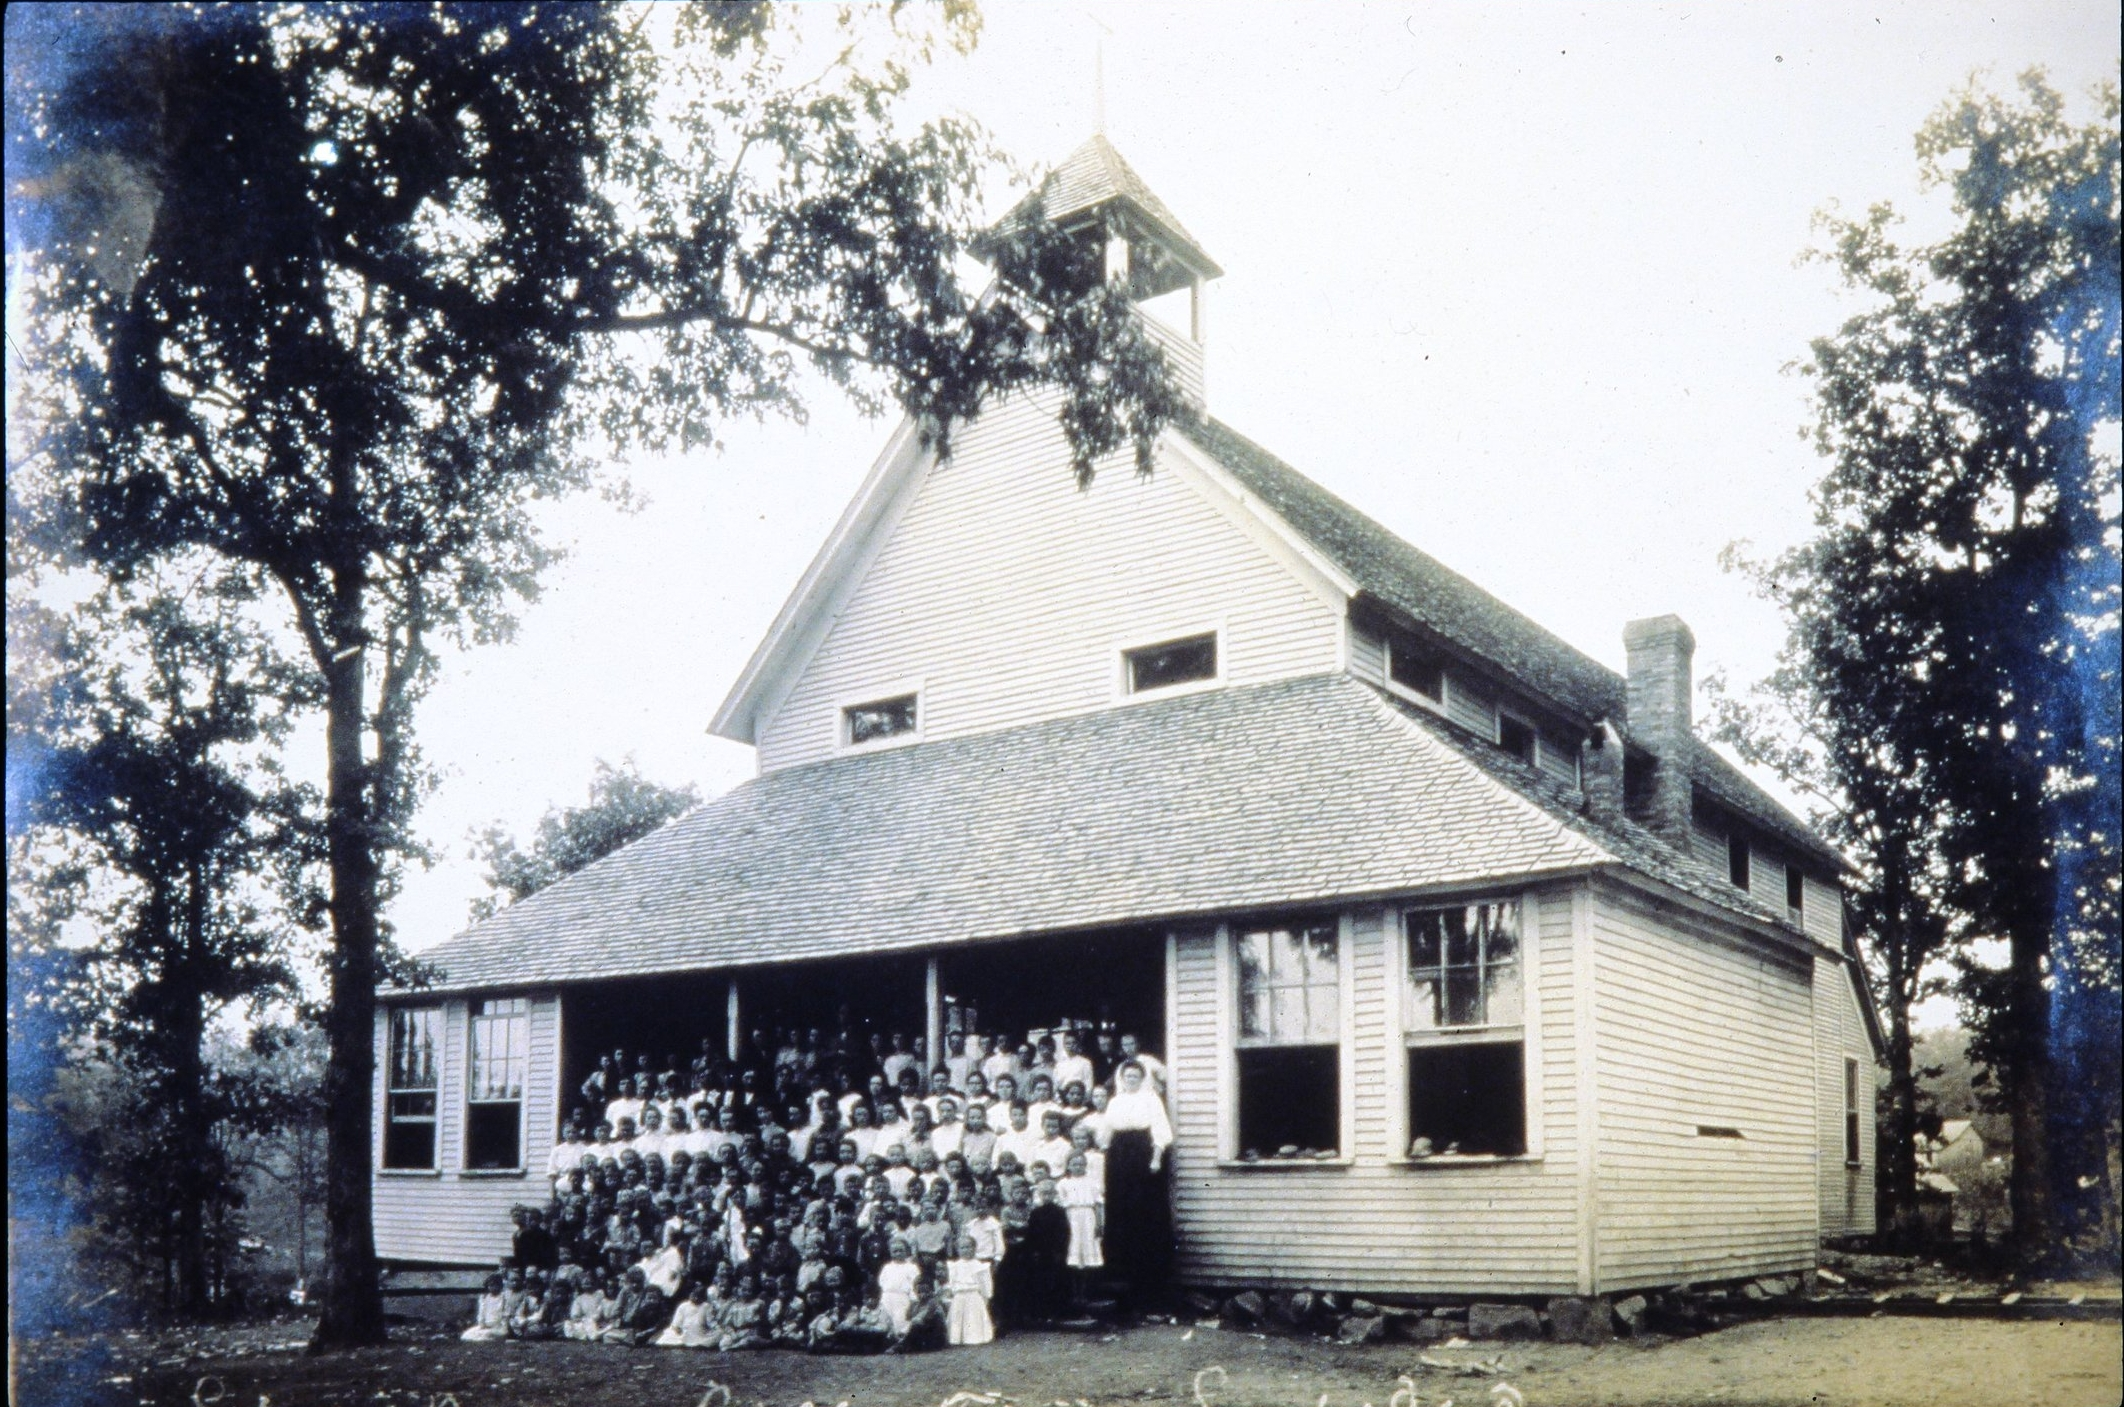 Clifty School, August 11, 1908